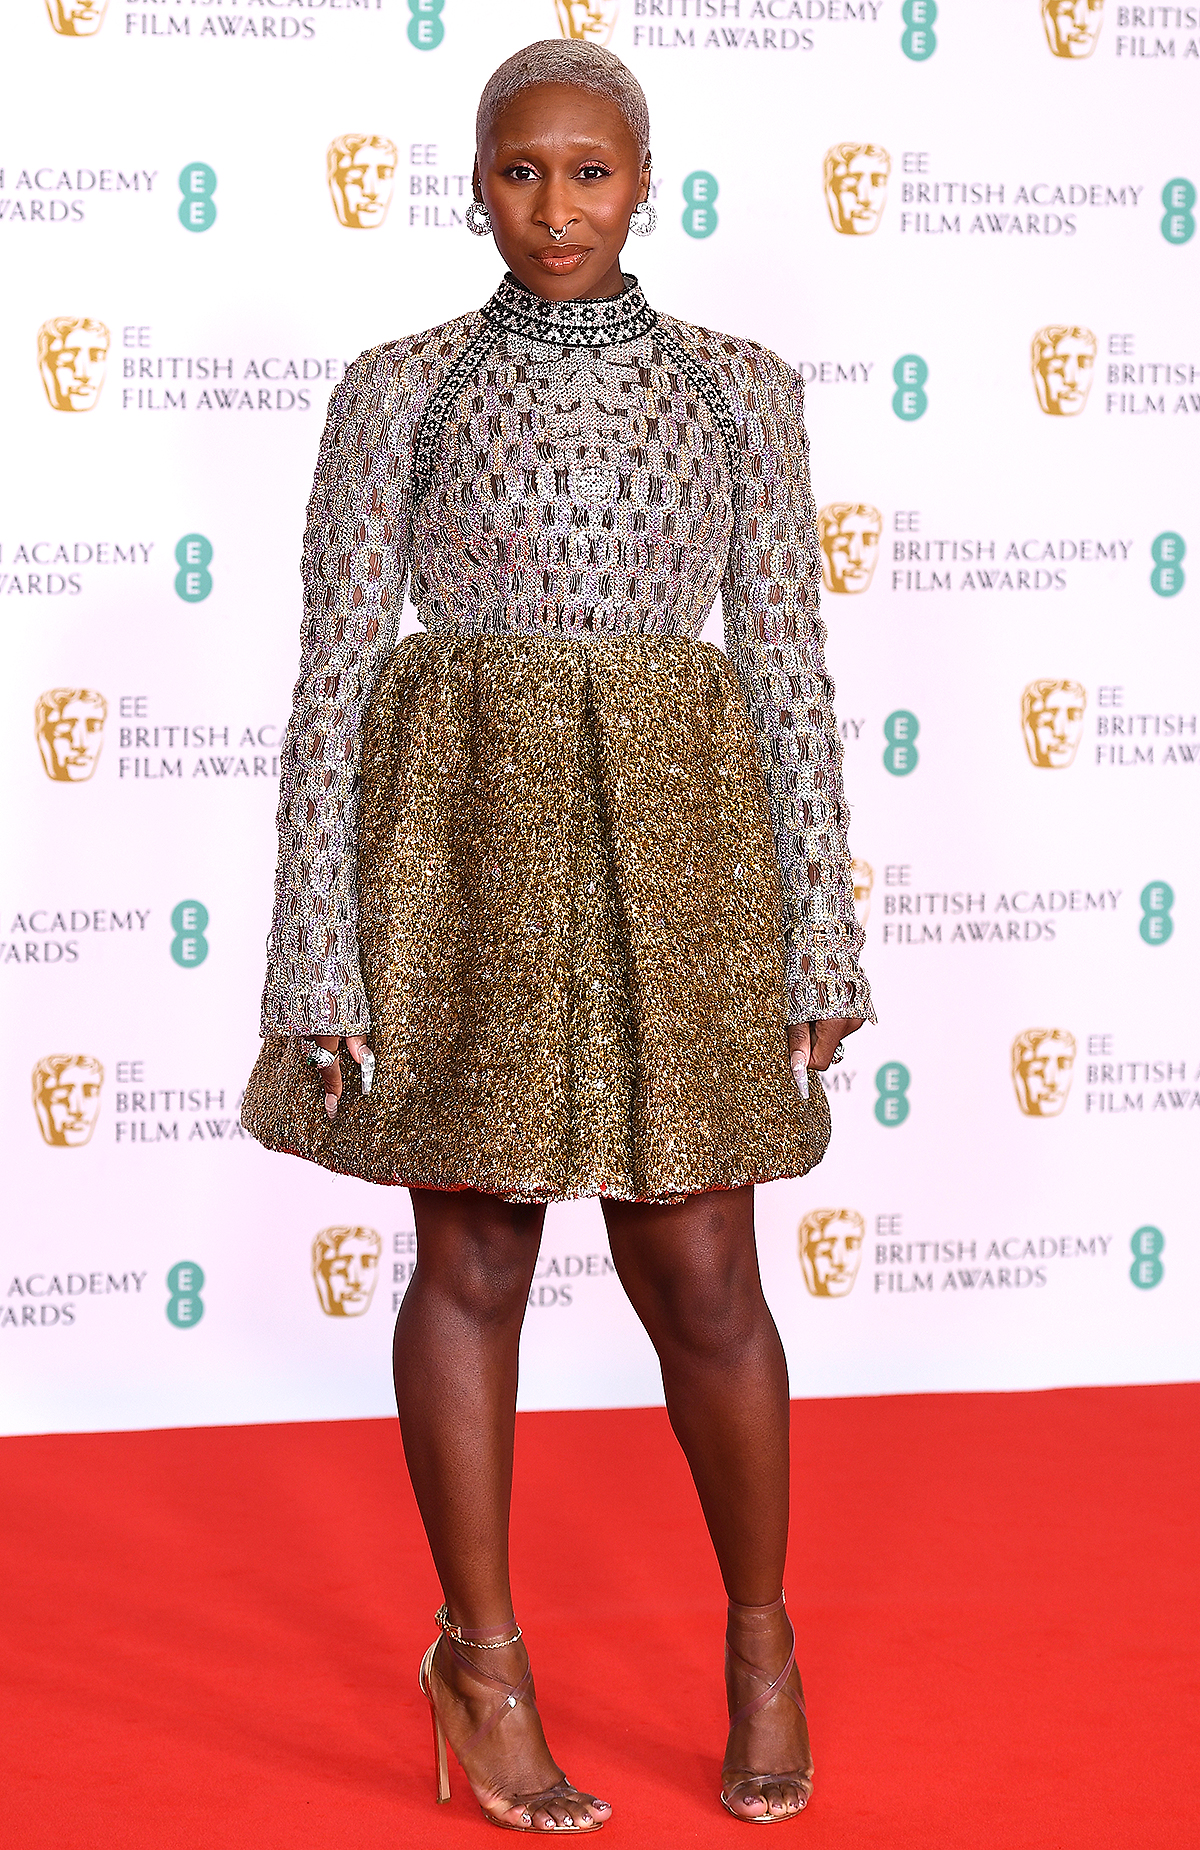 Presenter Cynthia Erivo attends the EE British Academy Film Awards 2021 at the Royal Albert Hall on April 11, 2021 in London, England.